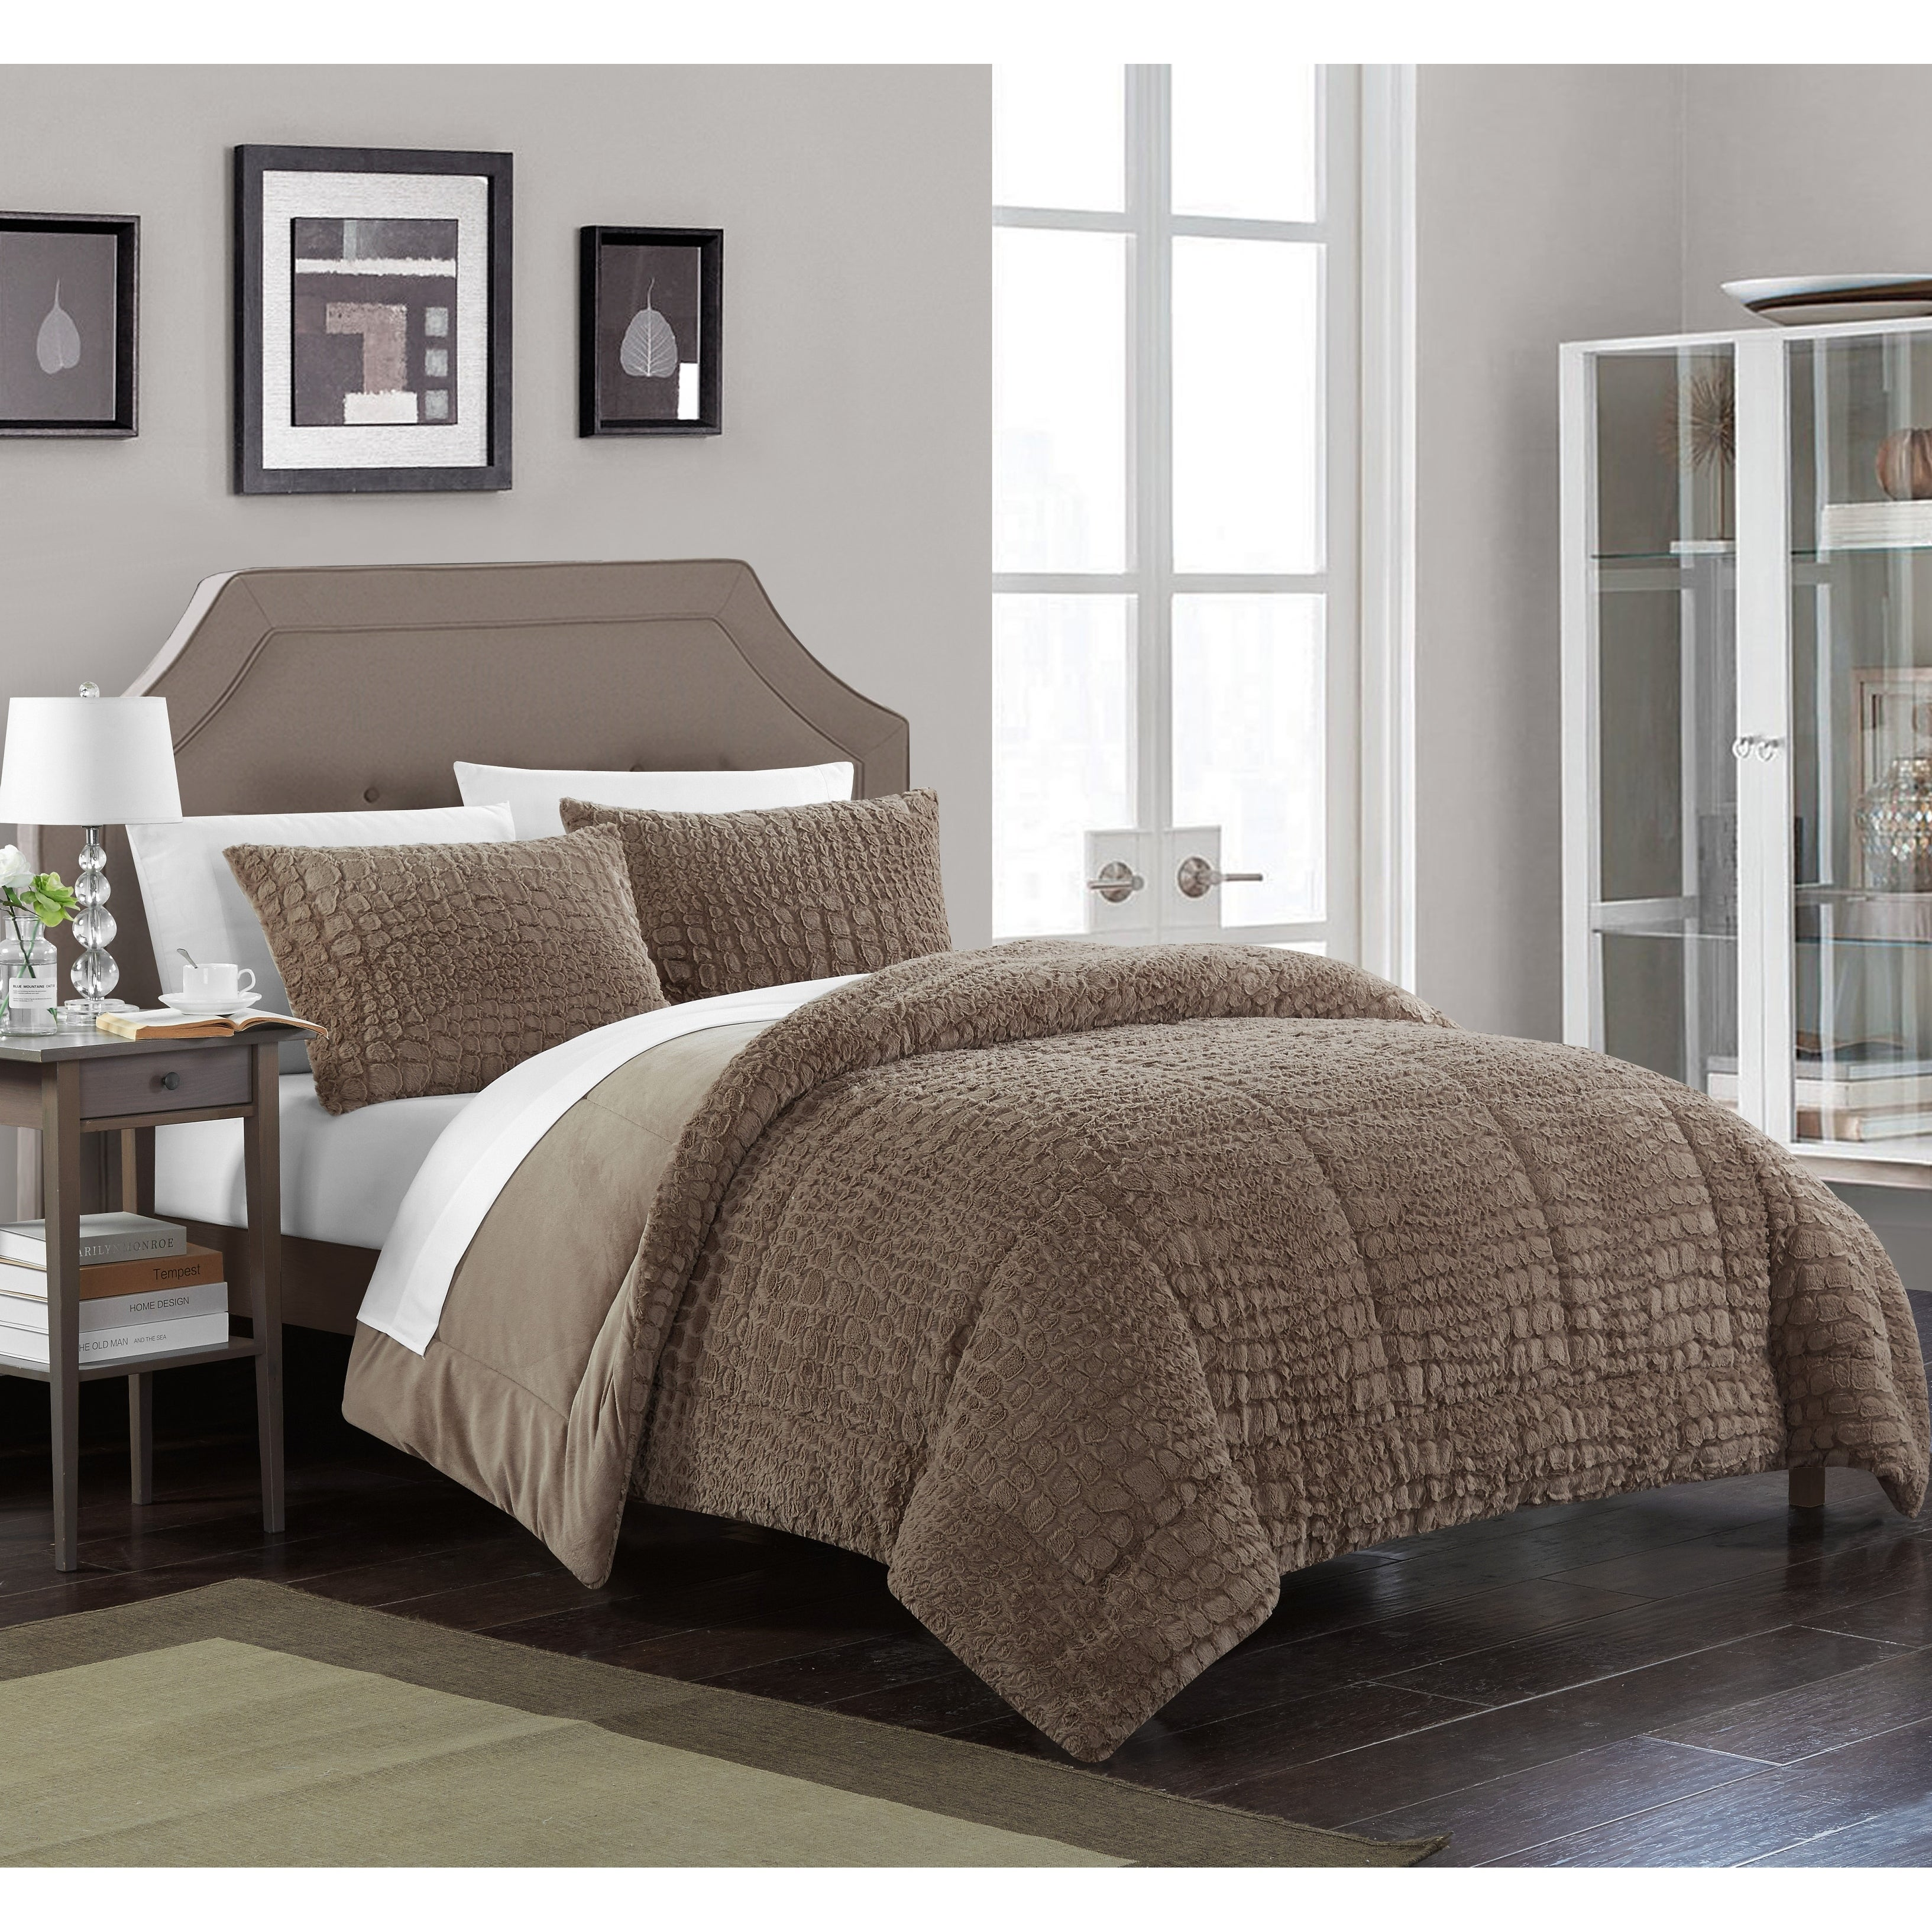 Chic Home Caimani 7 Piece Bed In A Bag Comforter Set Faux Fur Brown